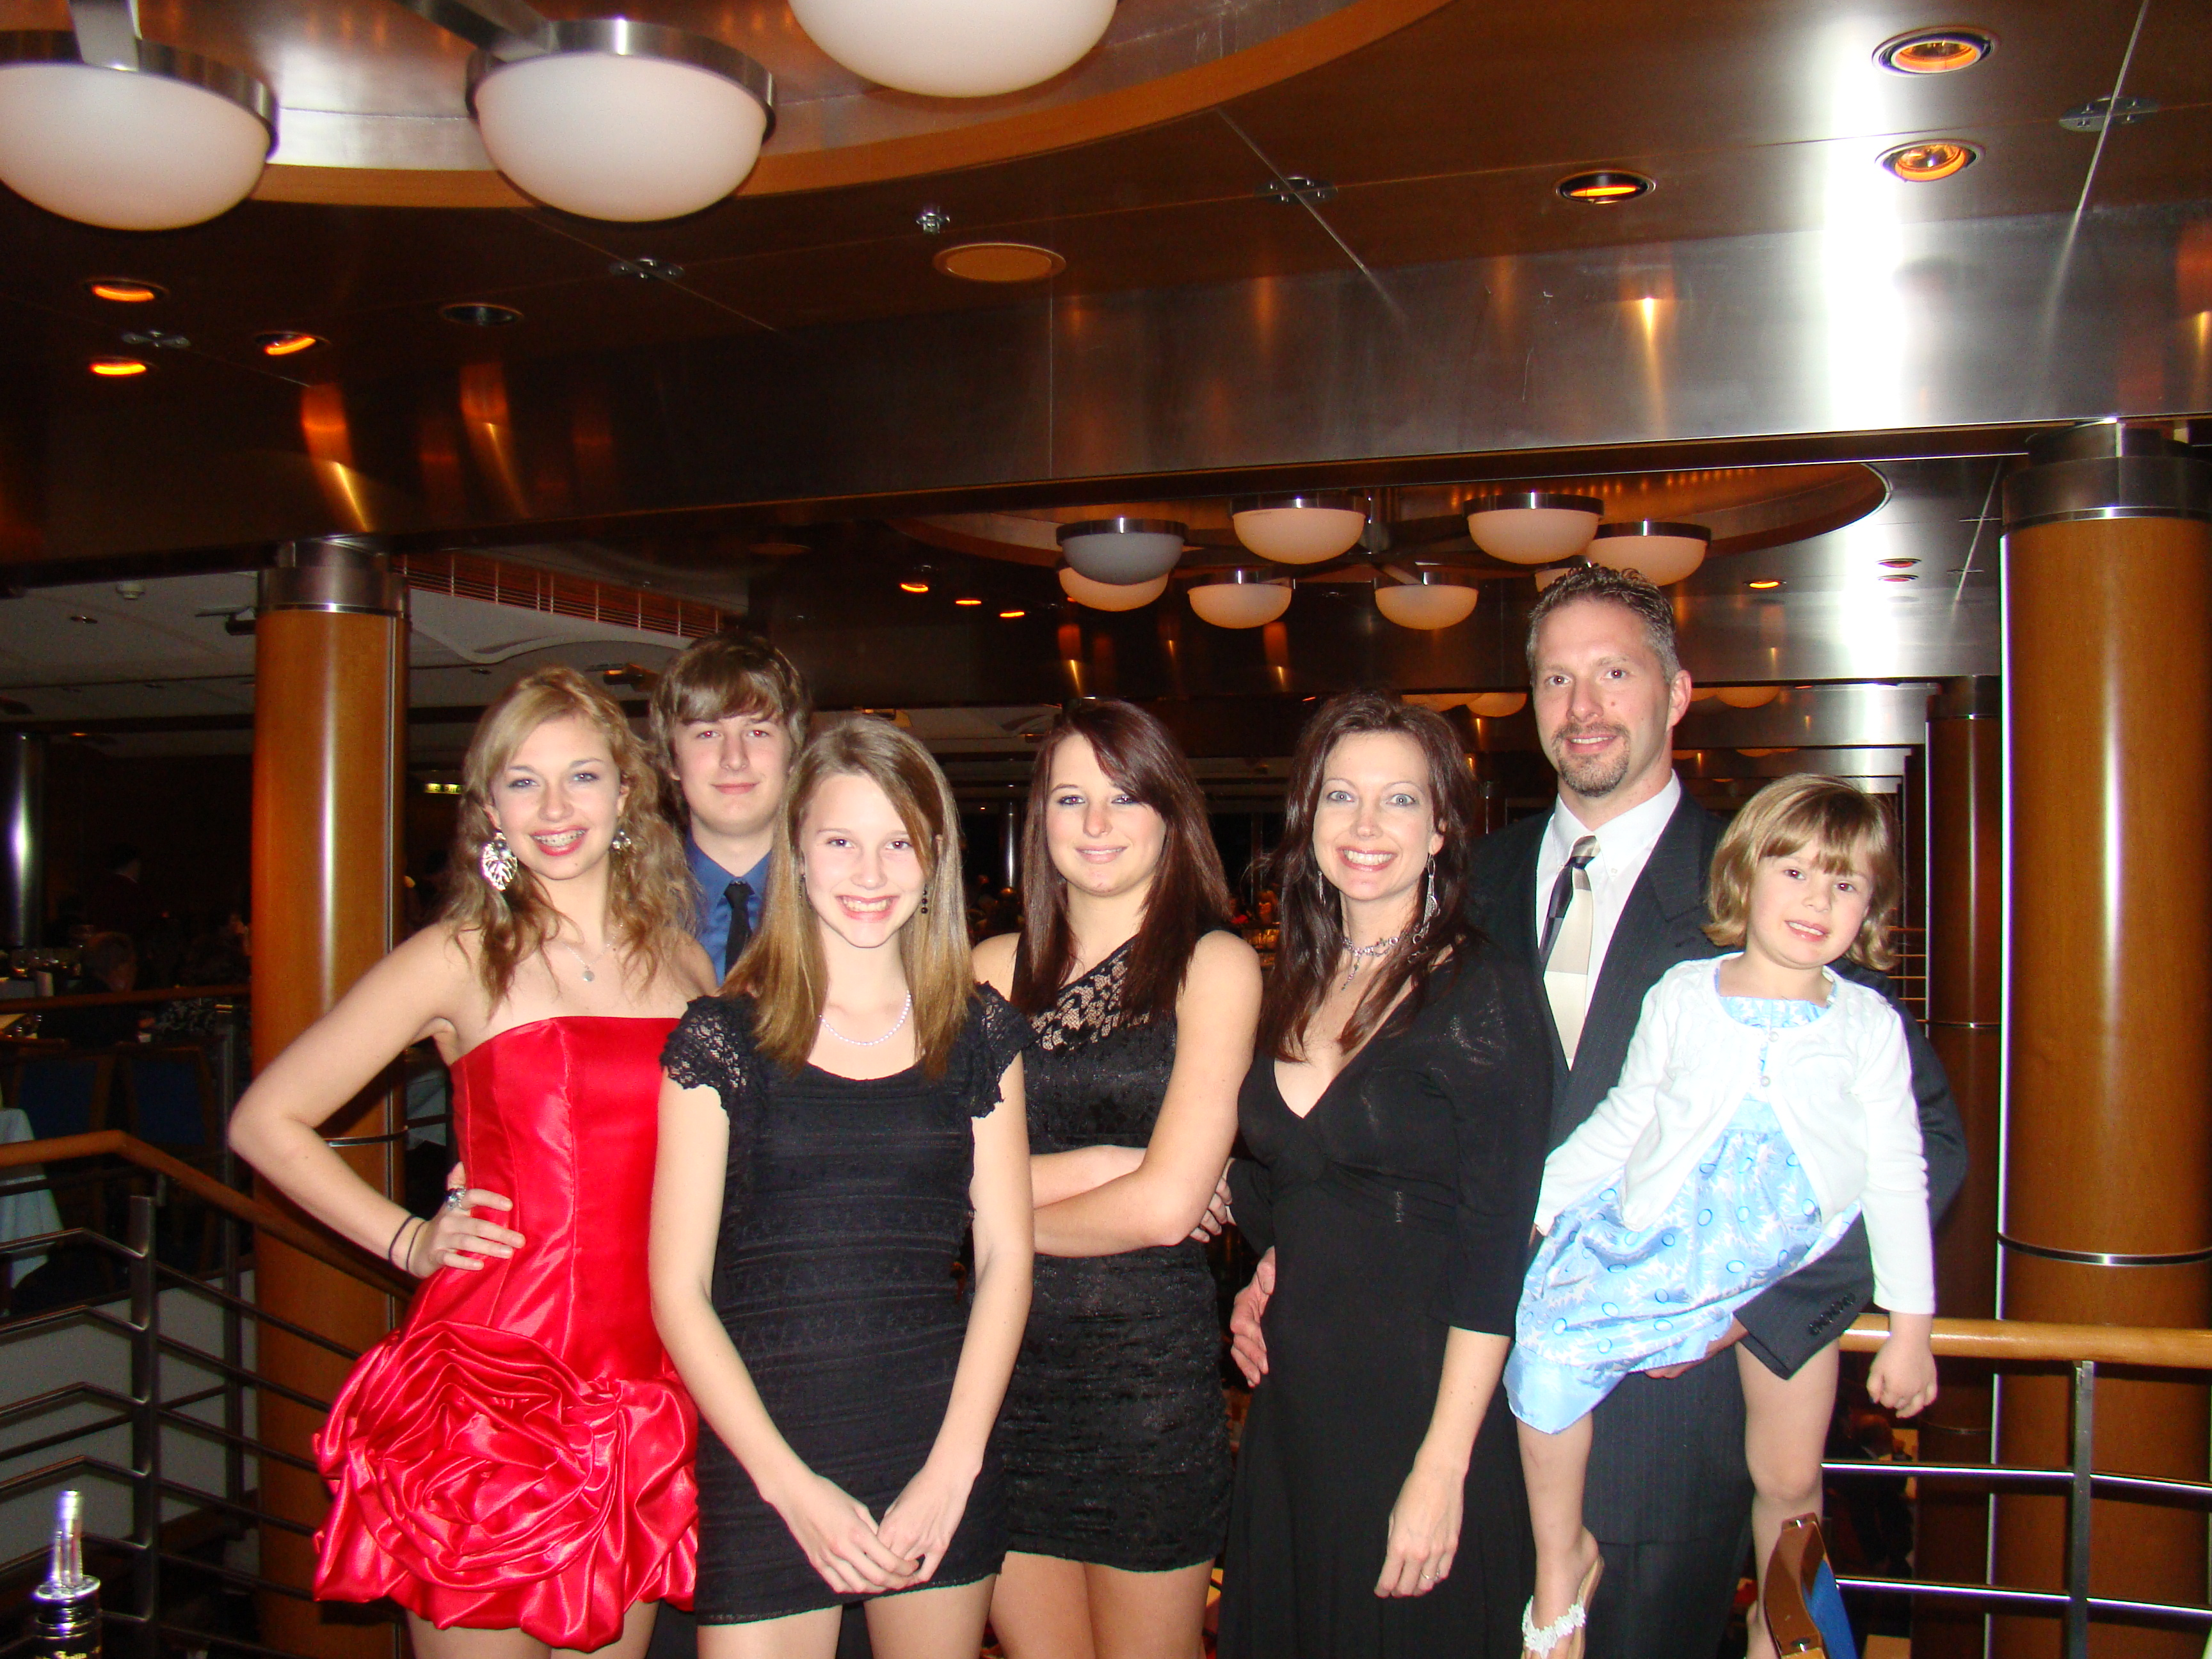 Fry-Niehaus Family cruise pictures 2011